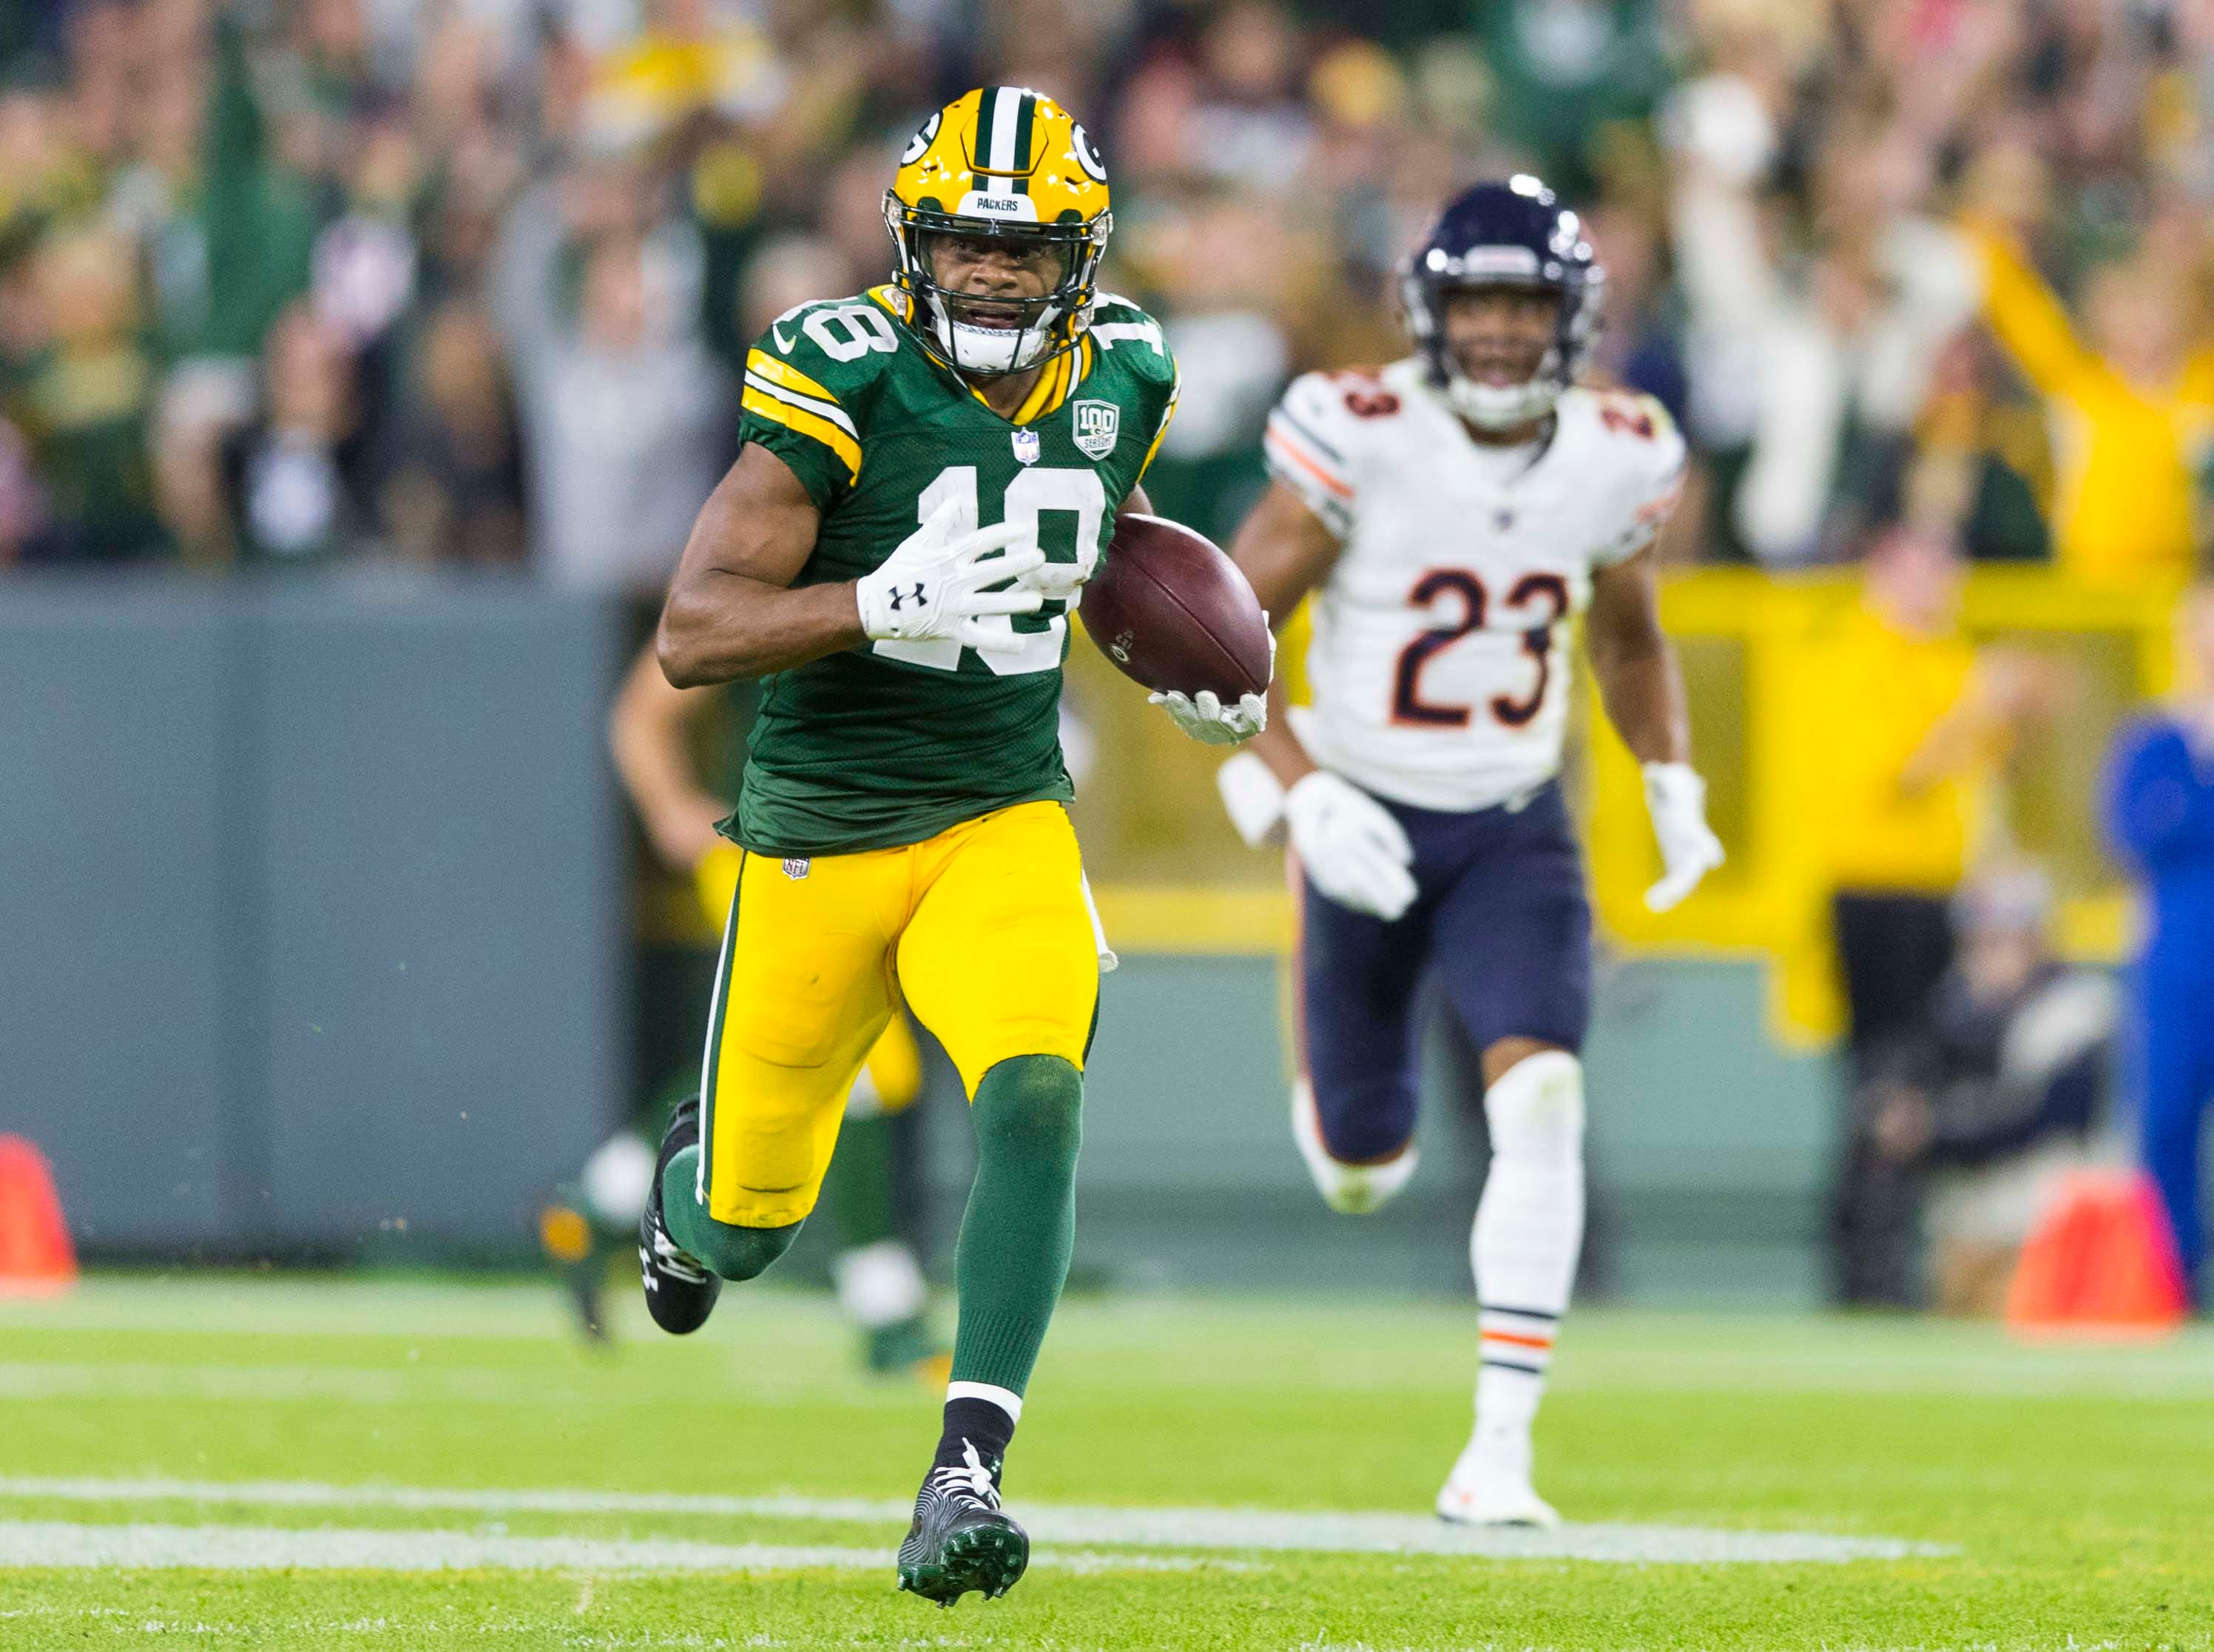 NR: Randall Cobb, WR, Packers: Agreed to deal with Cowboys